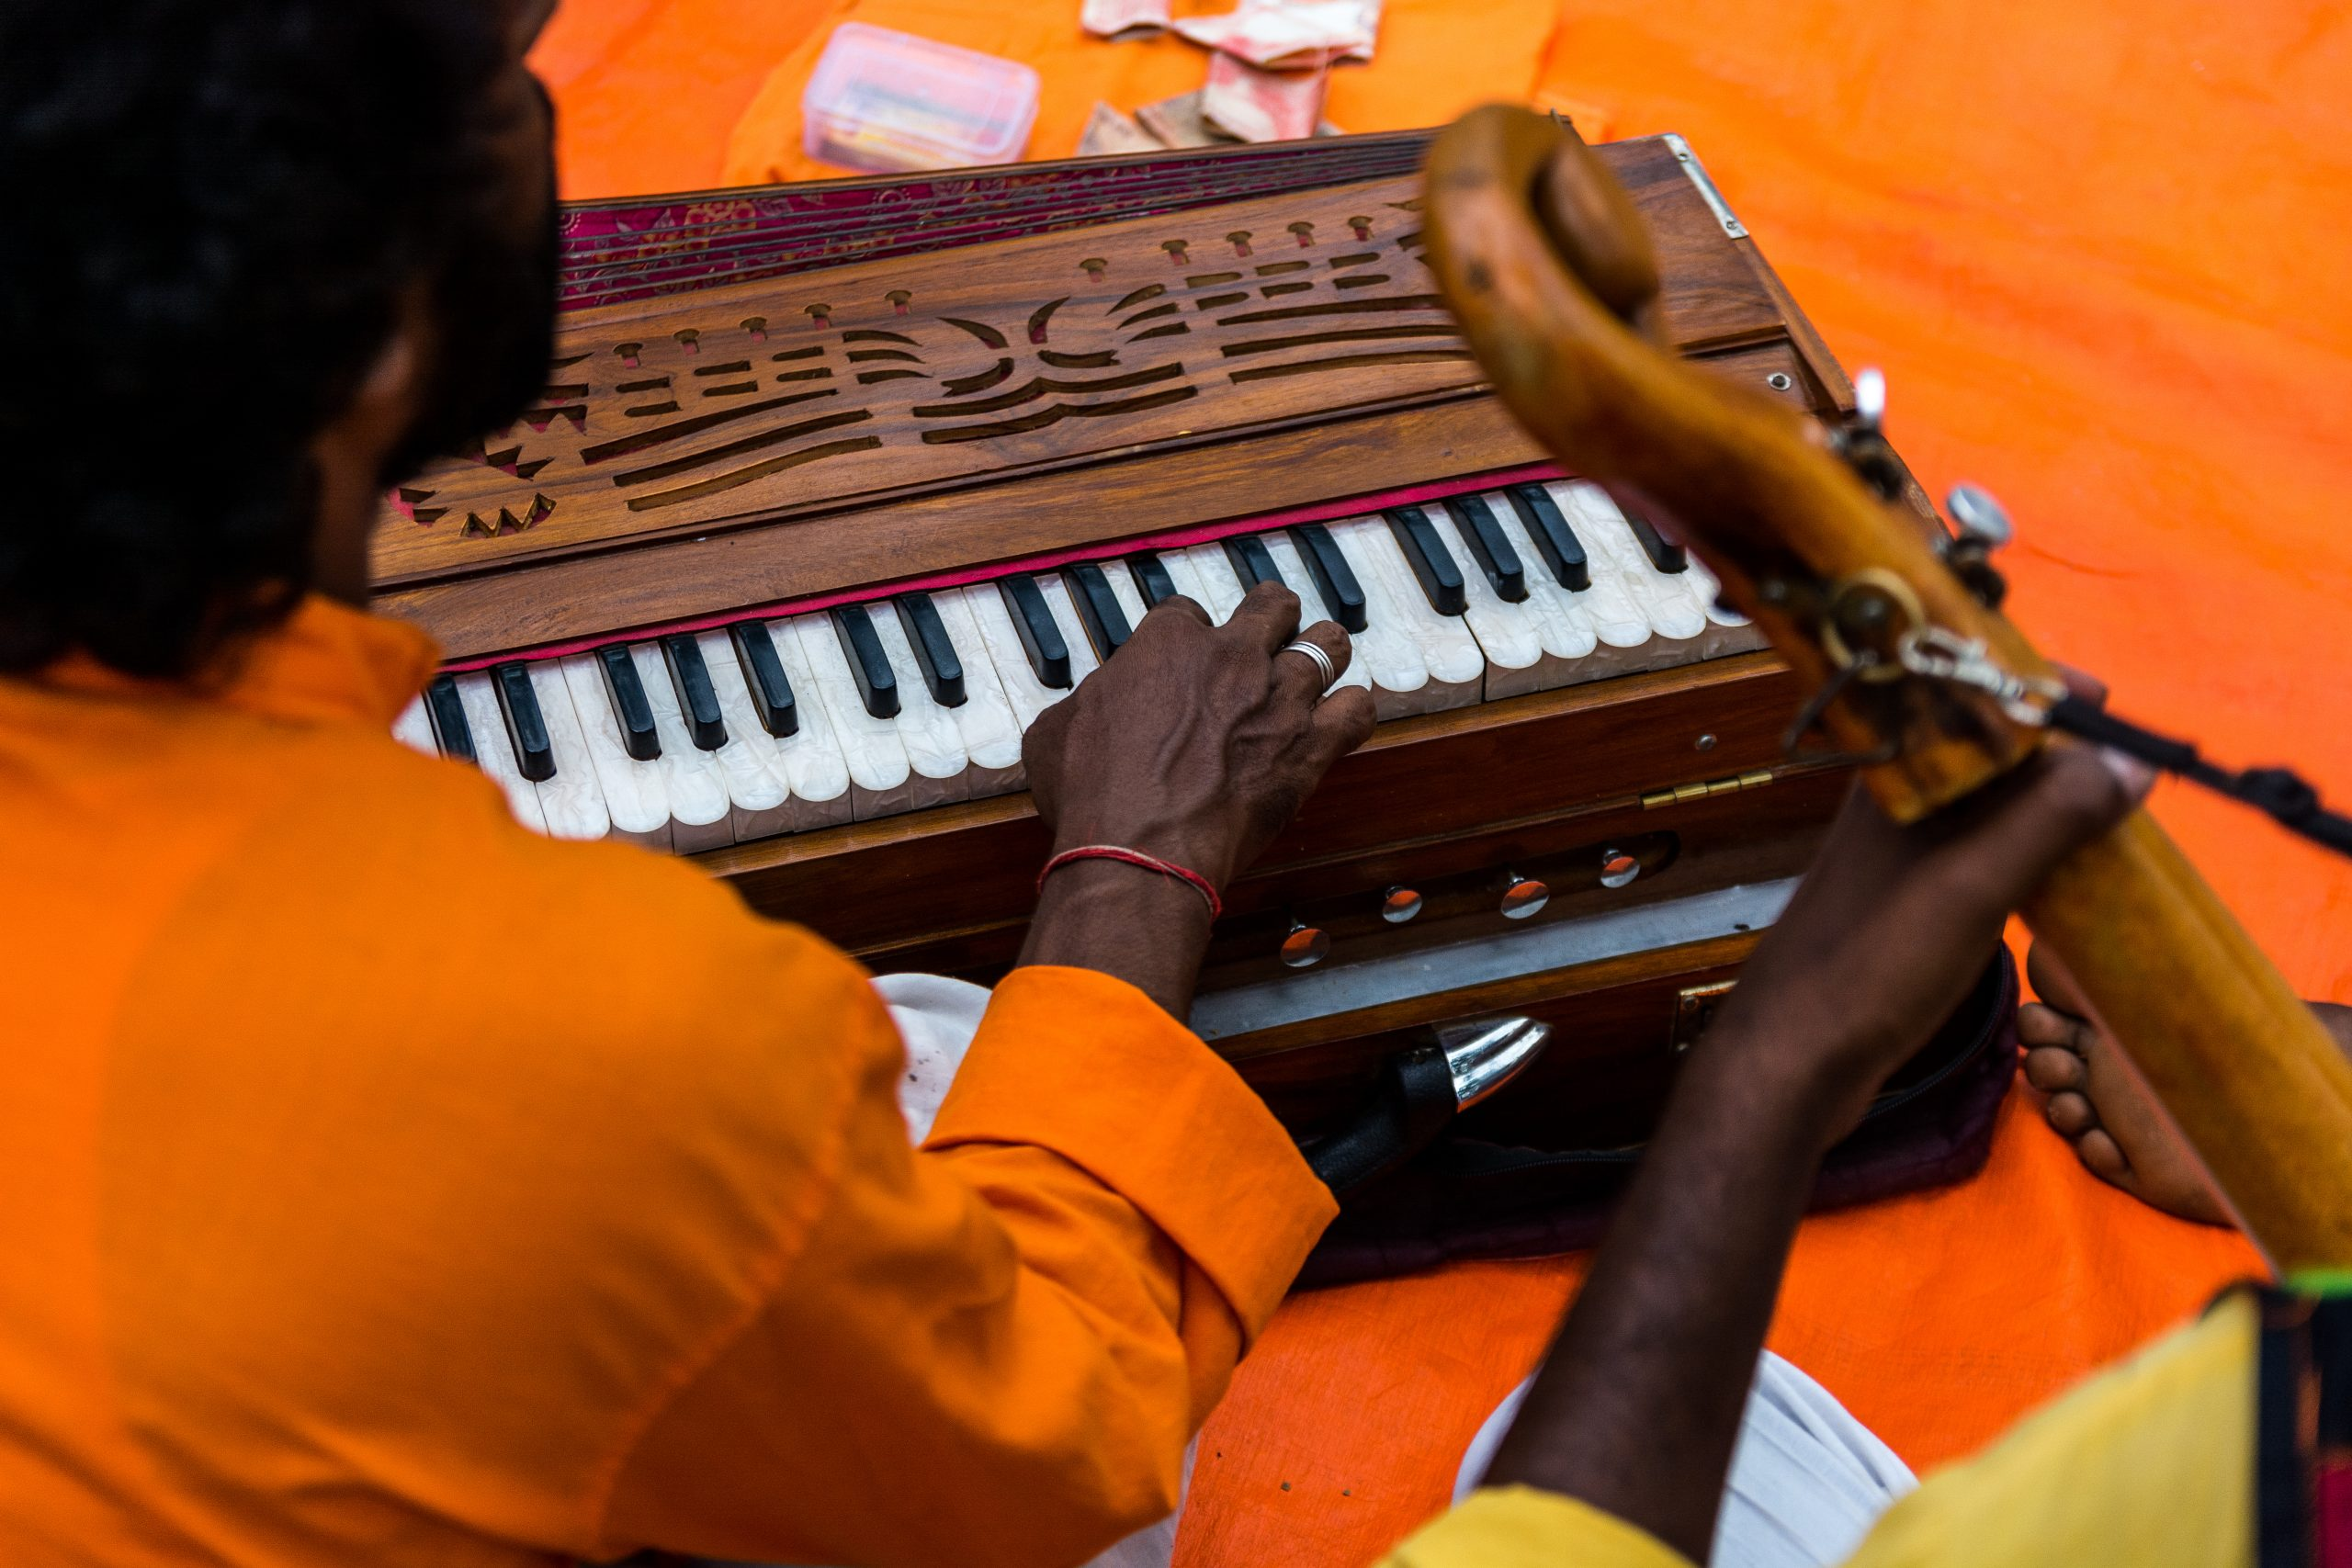 Playing harmonium